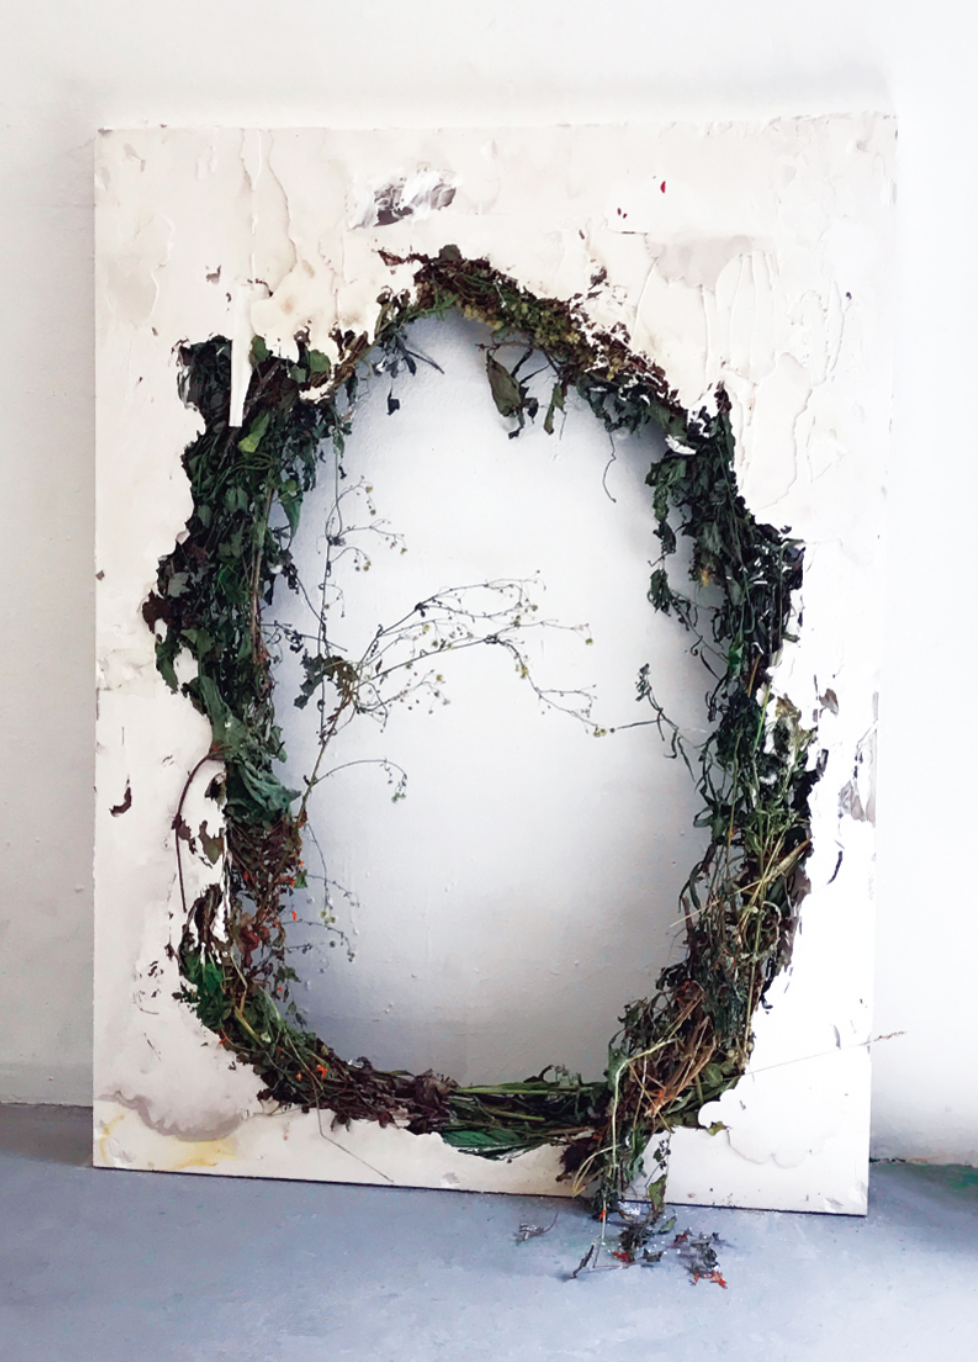 Image:   Untitled (Wreath)  ,   ©  Jack Henry   , 2017.